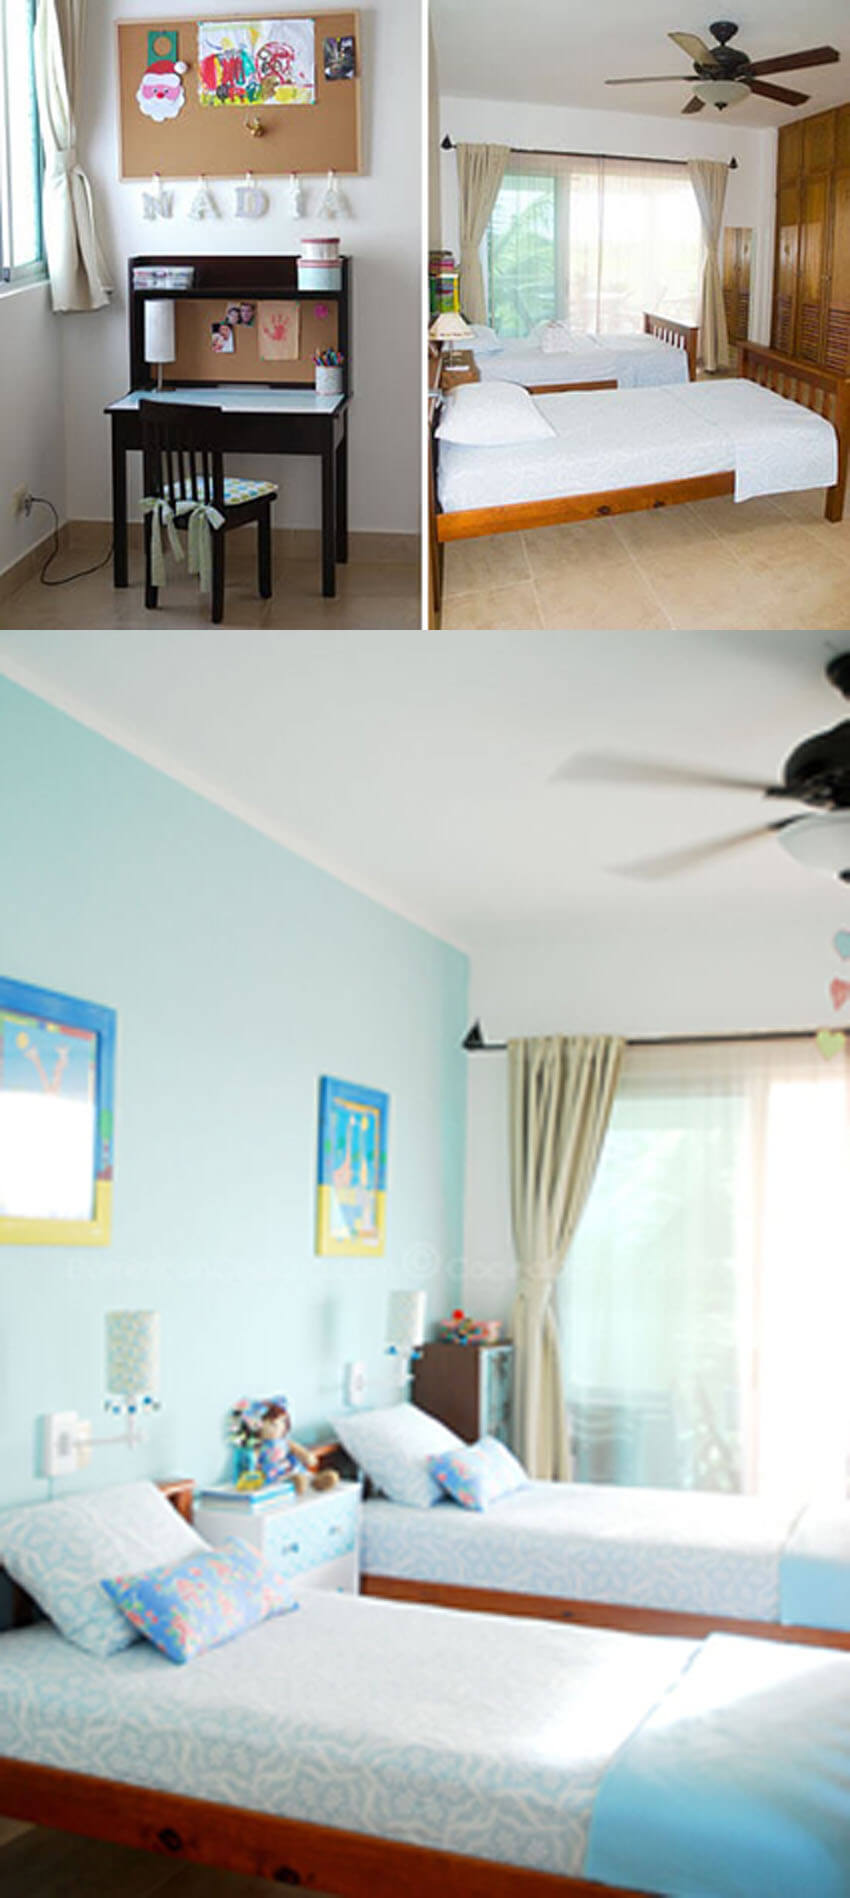 This kid's bedroom went from bland to awesome with only $100!